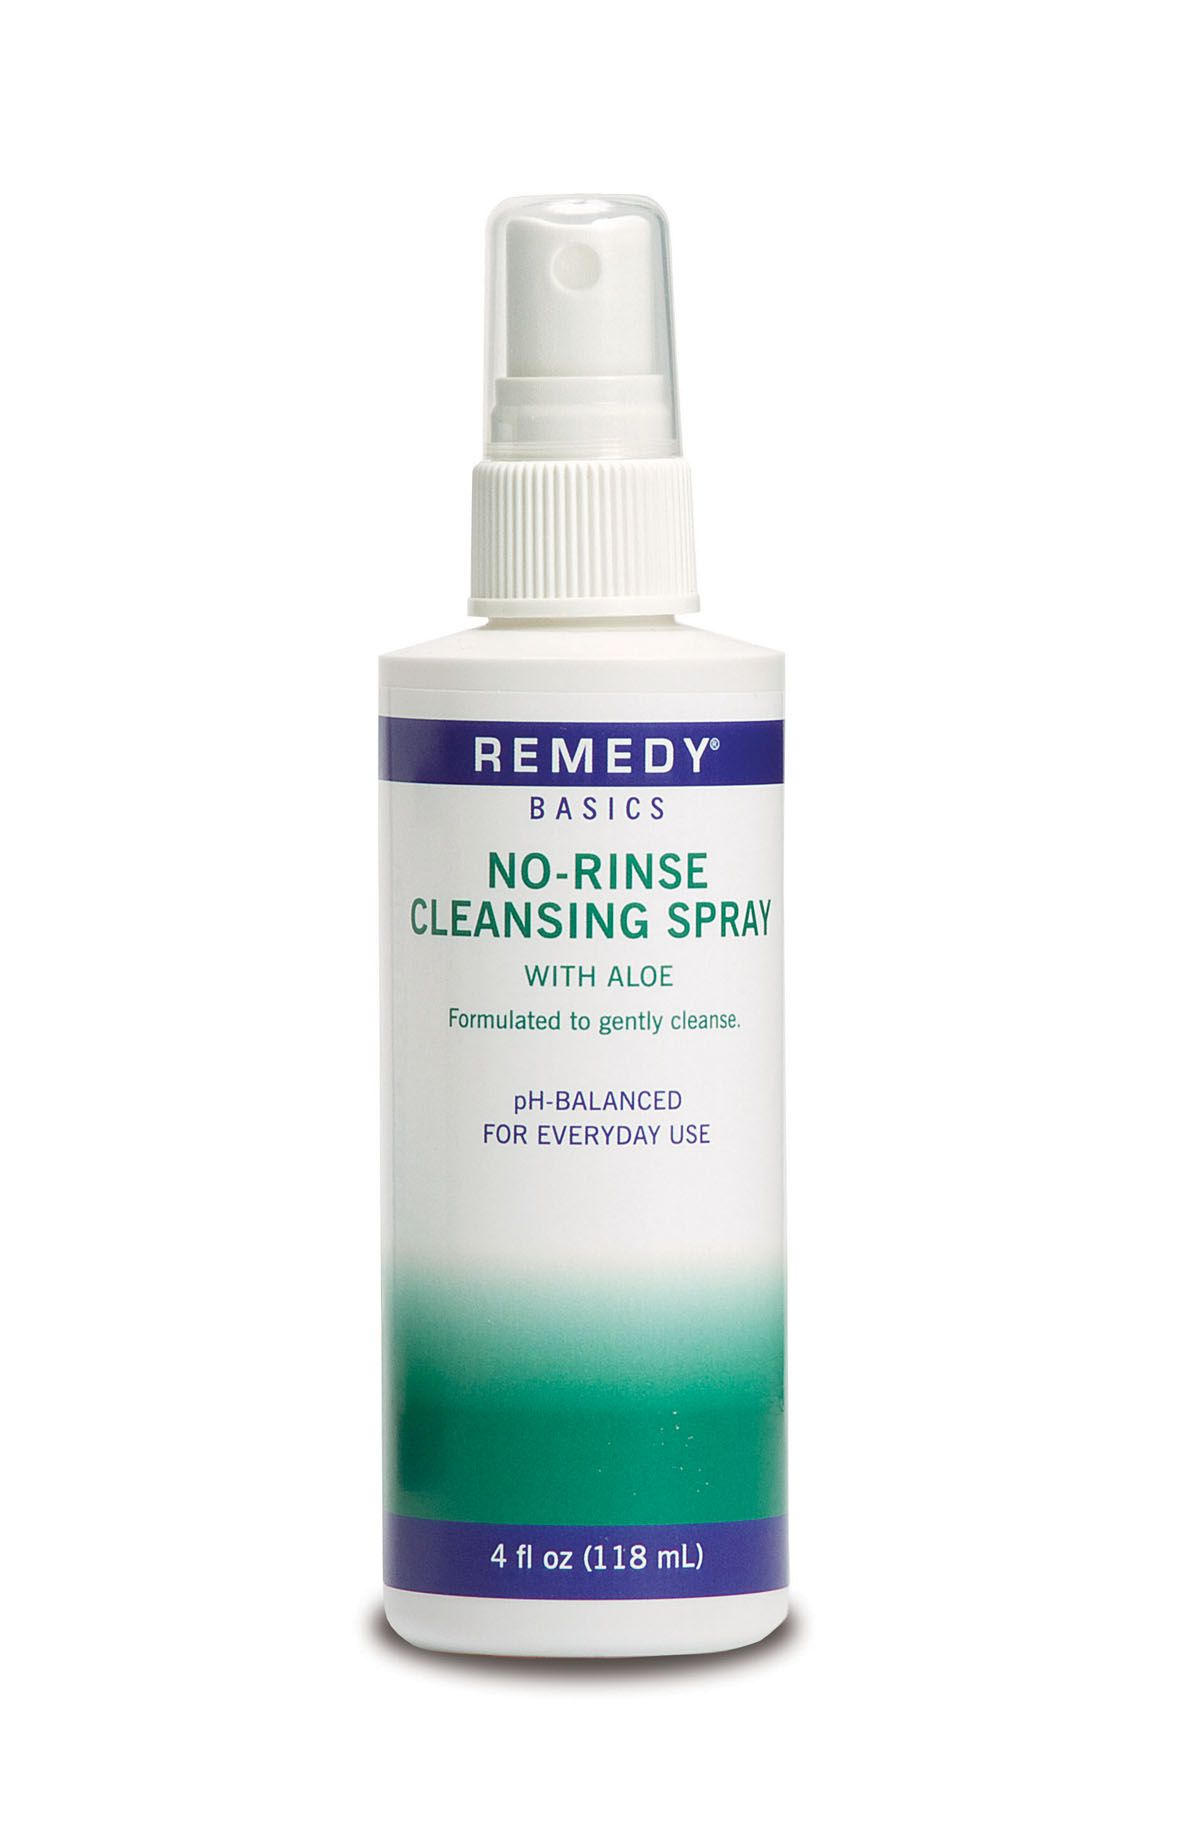 Remedy Basics No-Rinse Cleansing Spray - Cleanser, N/R, 4Oz, Box of 48 - Model MSC092SCSW04